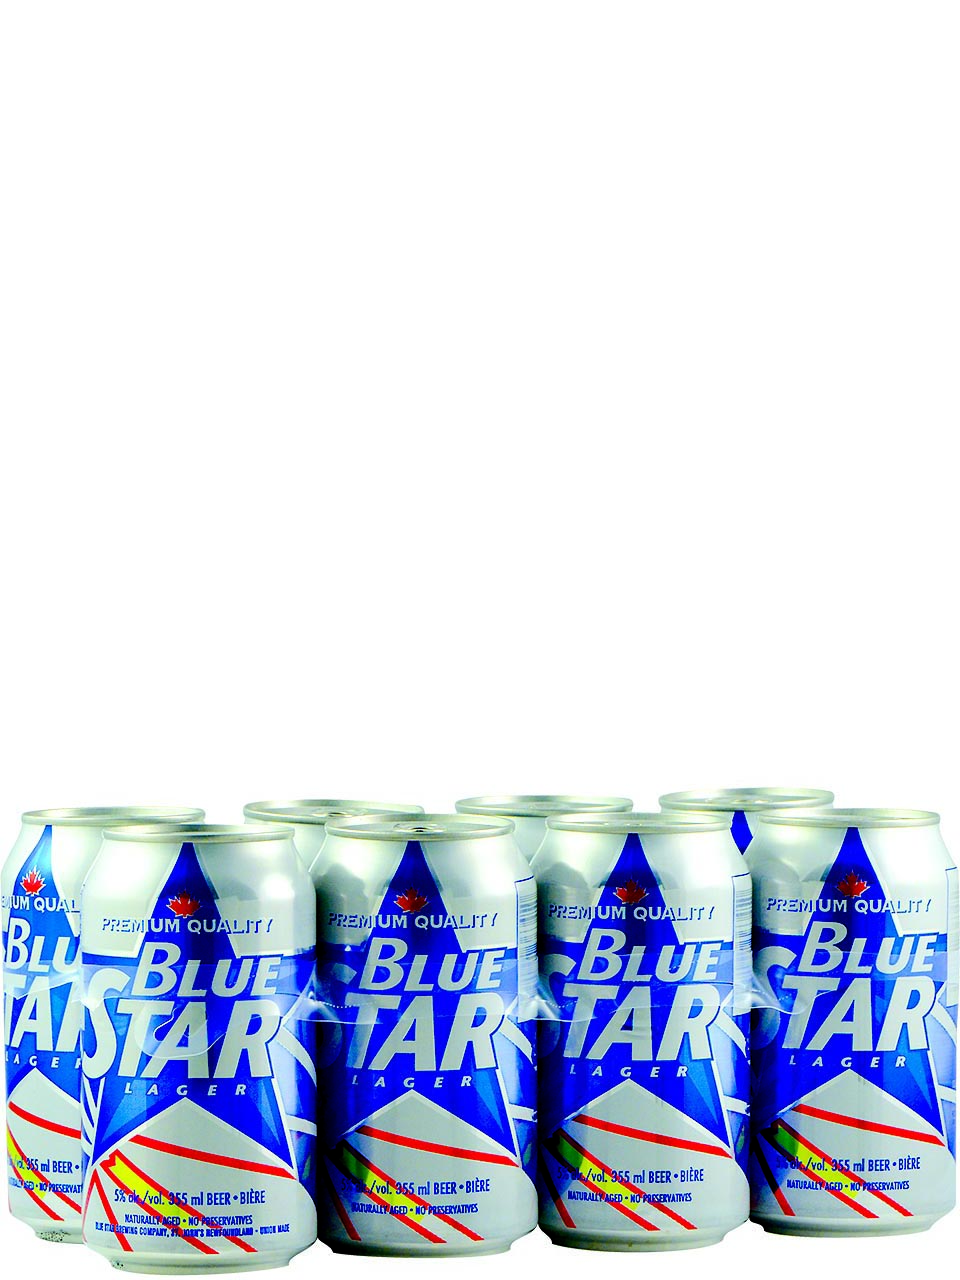 Blue Star Cans 8pk